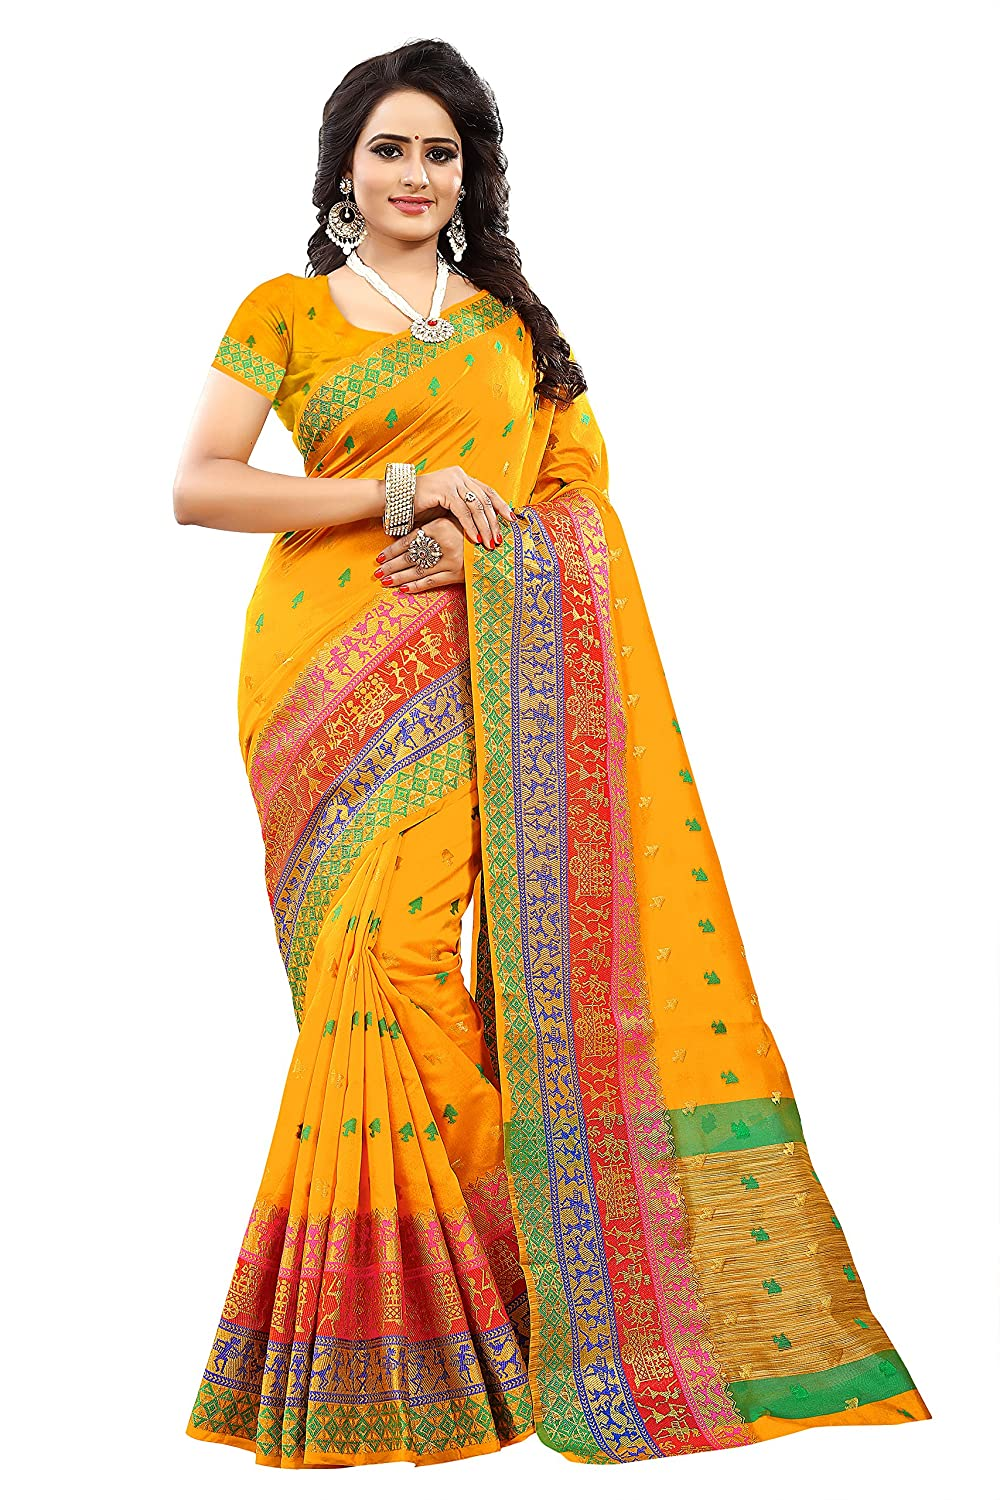 2eccdef01a3b6 Store Mart Women s Tussar Silk Saree Kanchipuram Style (Multi-Coloured)   Amazon.in  Clothing   Accessories